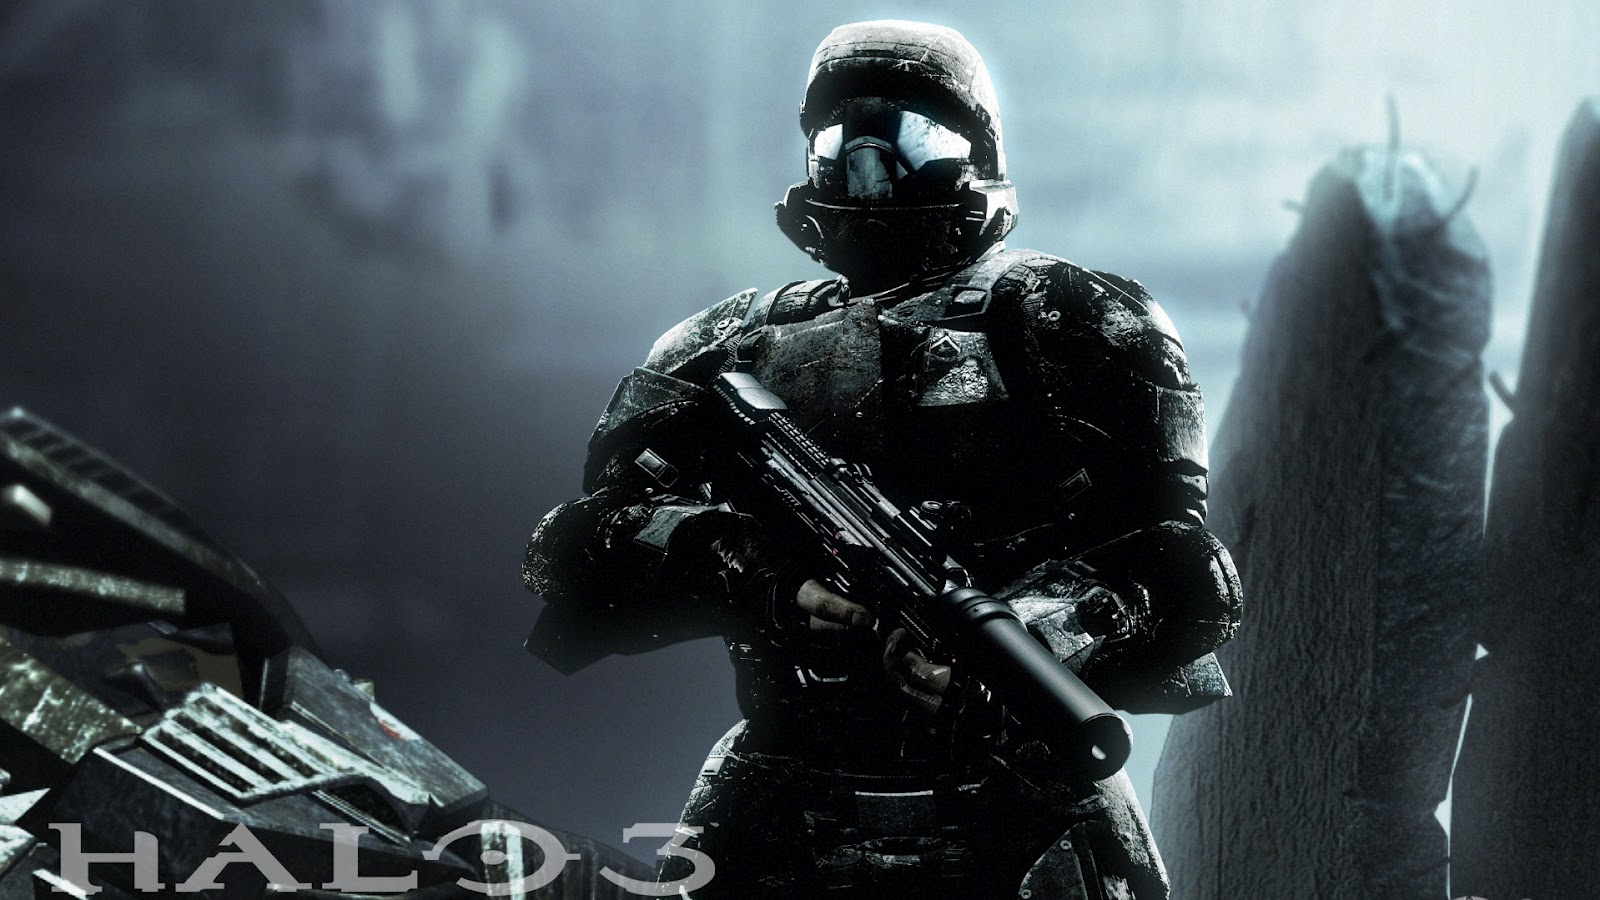 odst wallpaper background bungie xbox 360 microsoft fps first person 1600x900